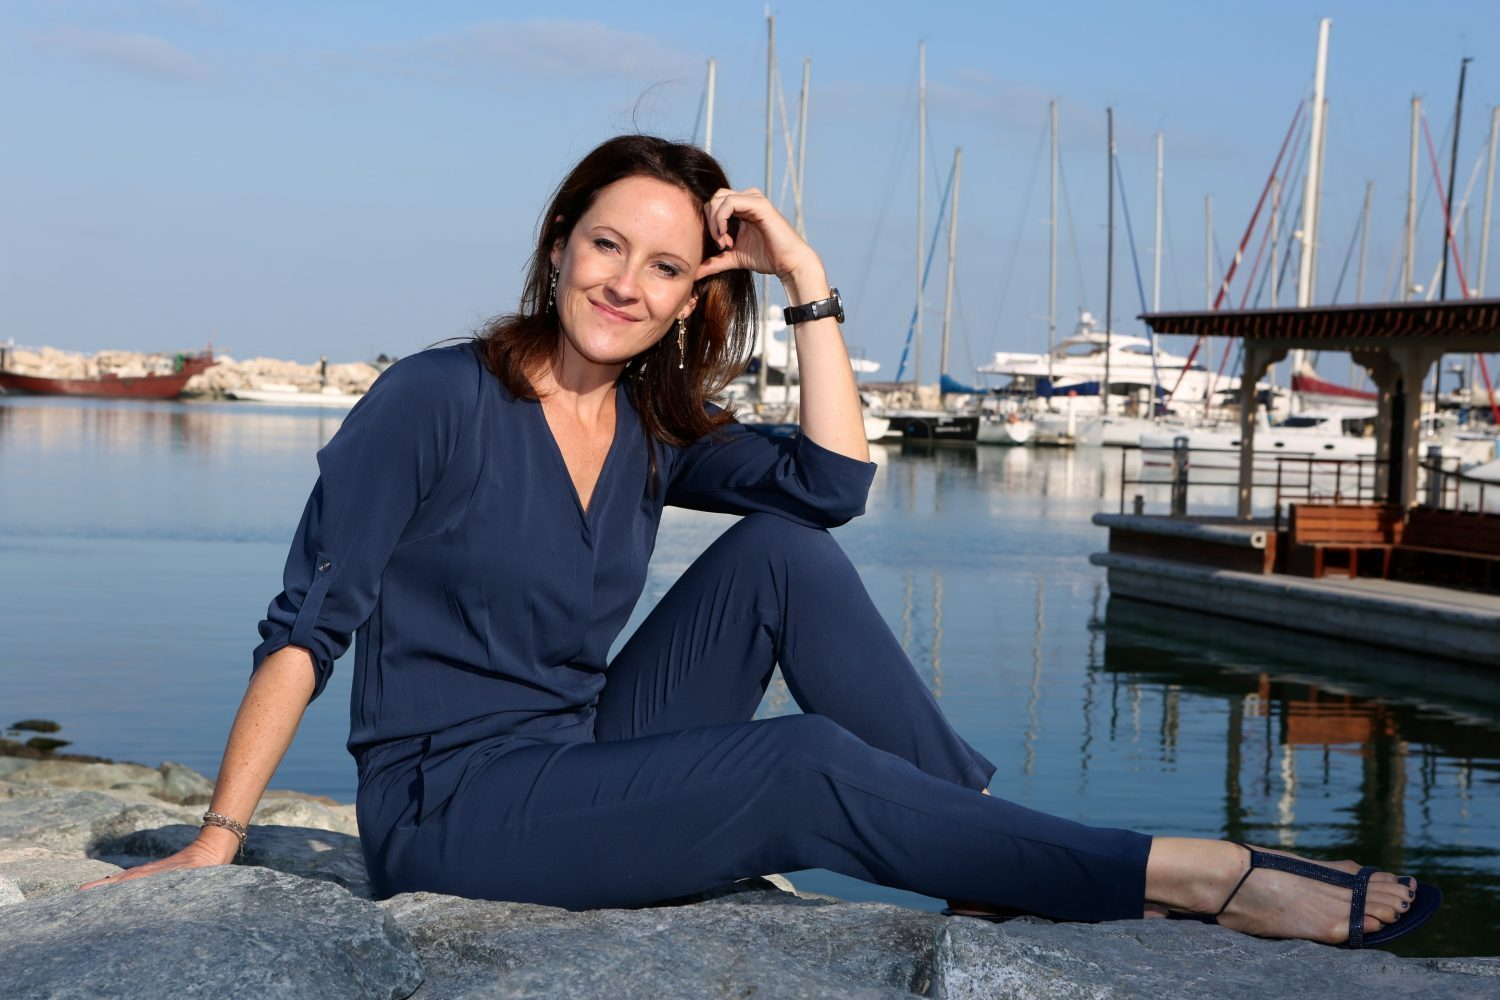 5 Questions With French Fashion Designer Mum Juliette Capillaire So Chic